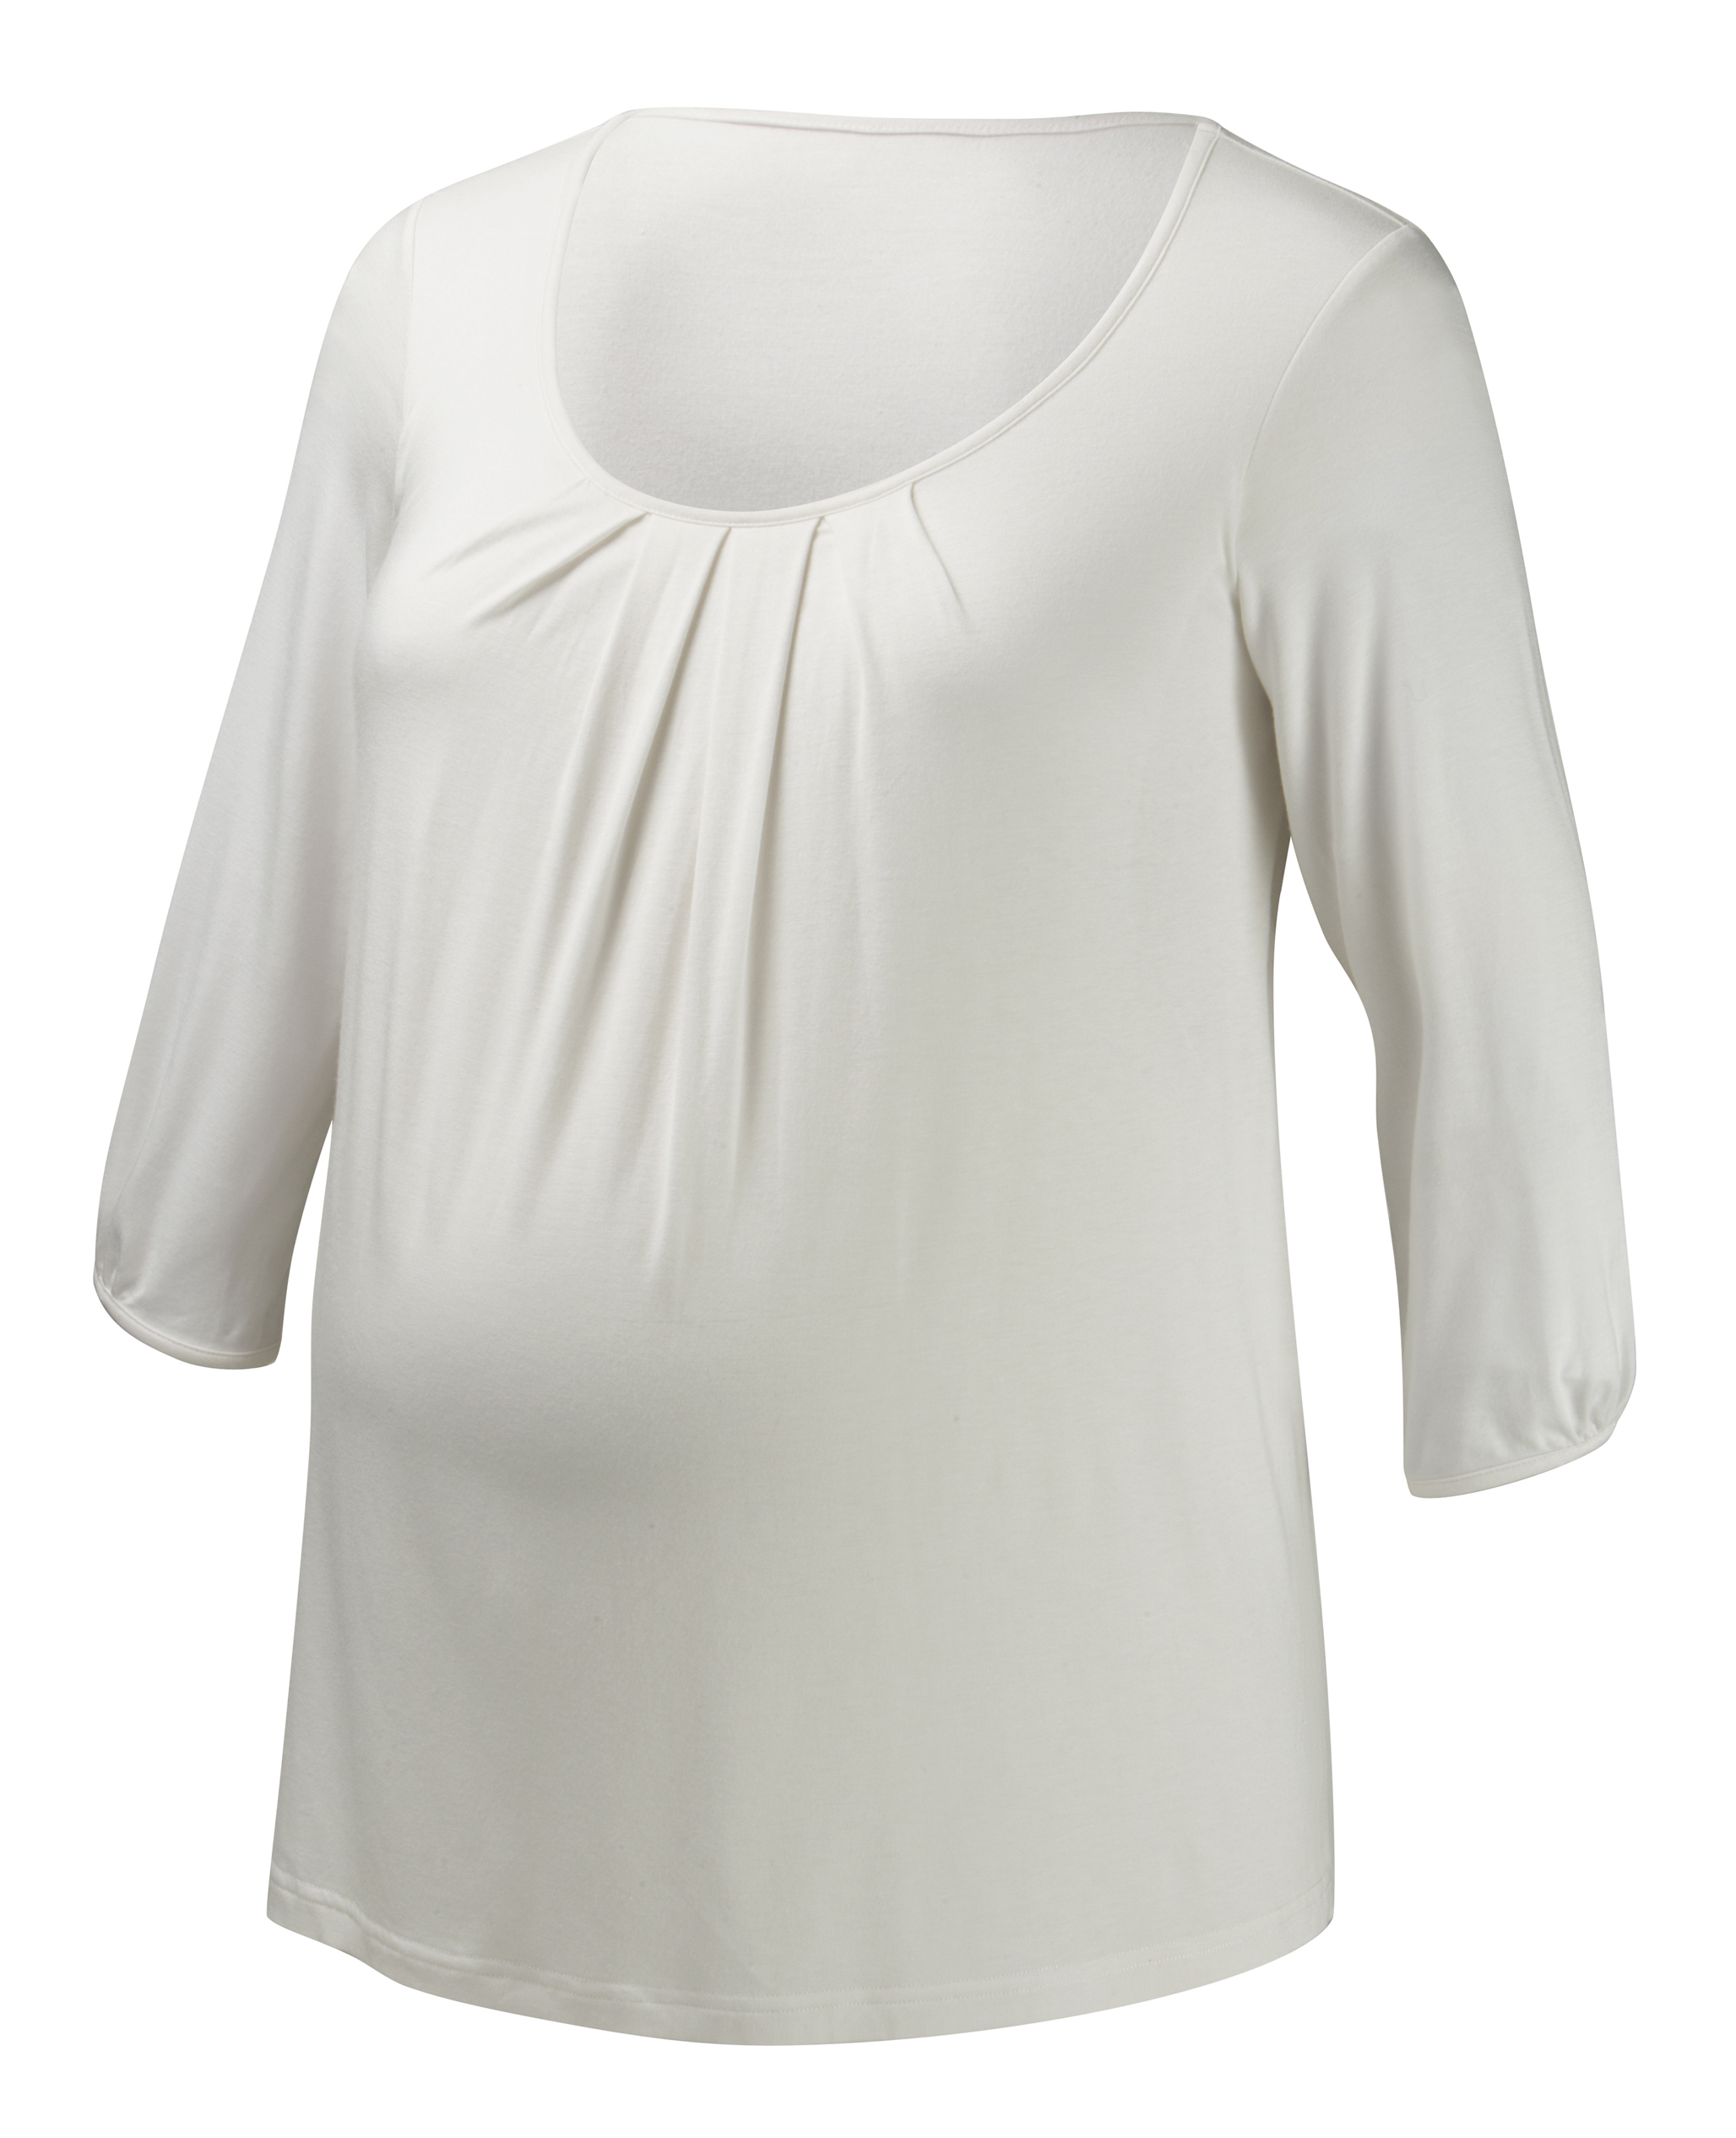 012-JT25-03 | cloud 9 ¾ sleeve nursing top | ivory